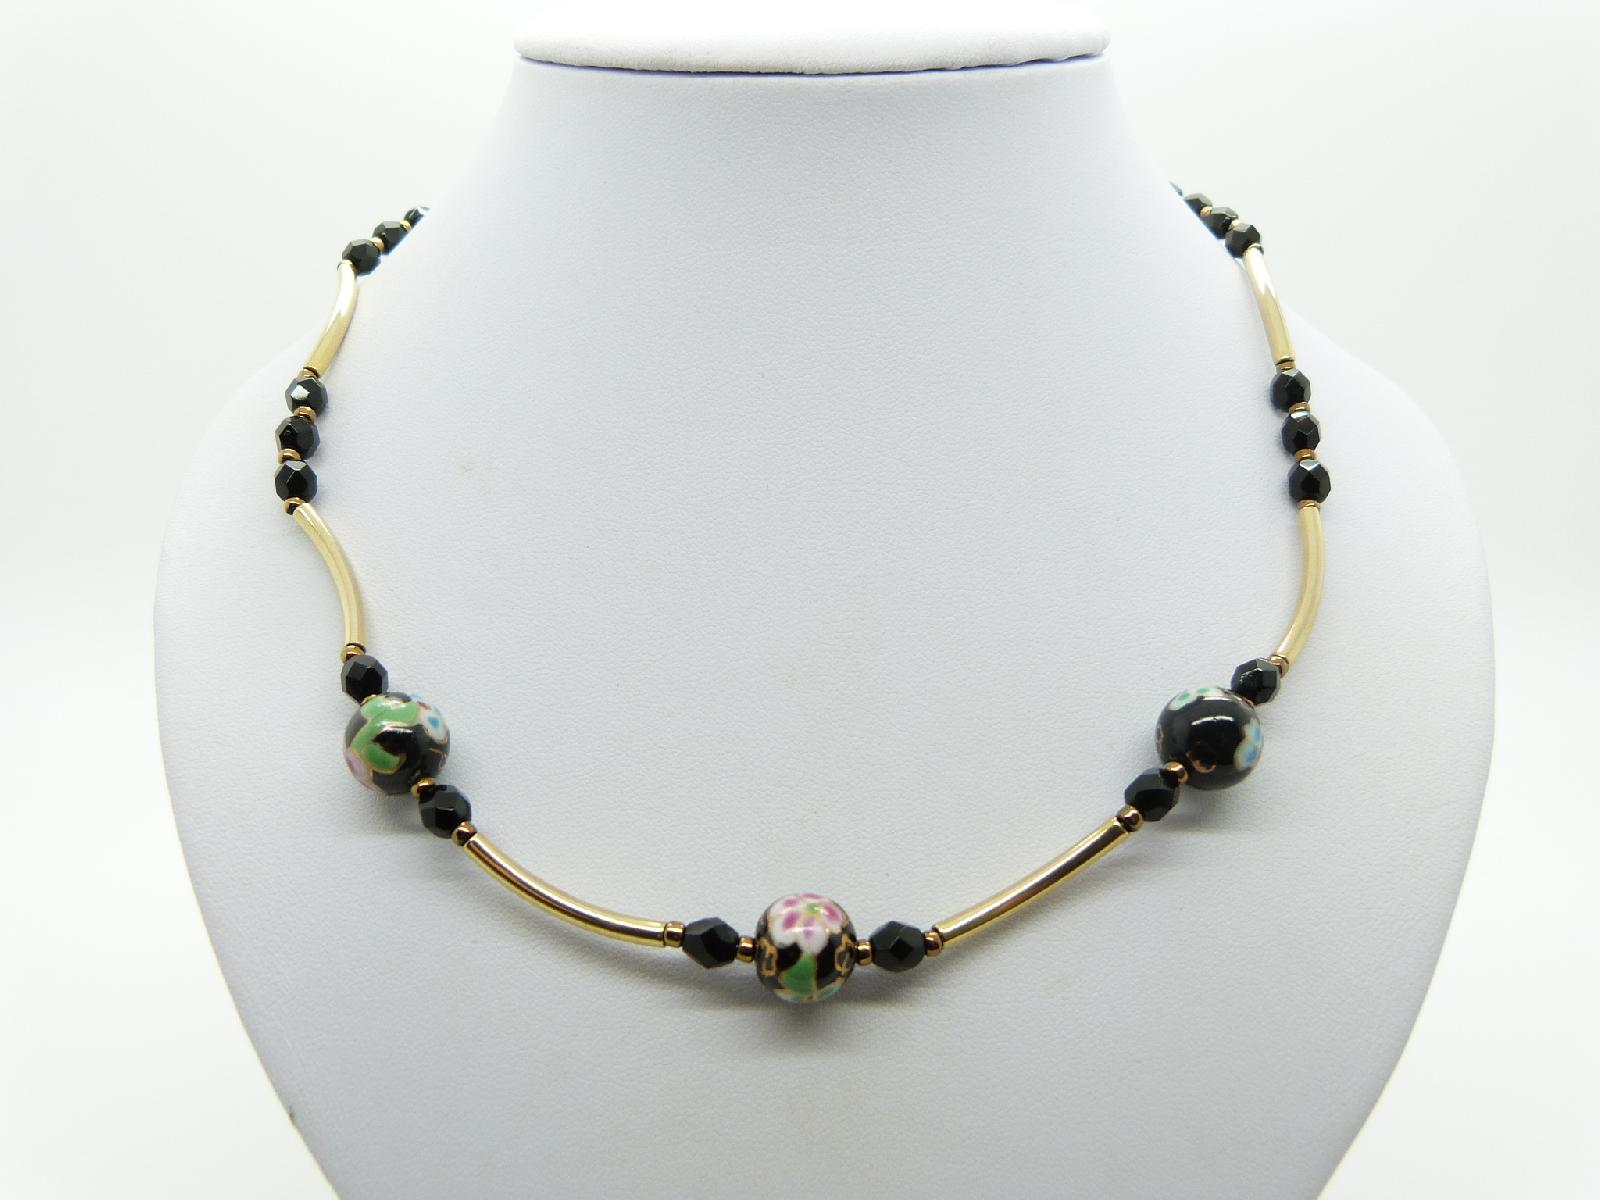 £18.00 - Vintage Redesigned 1950s Blac Murano Glass Flower Bead Gold Link Necklace Unique 50cms